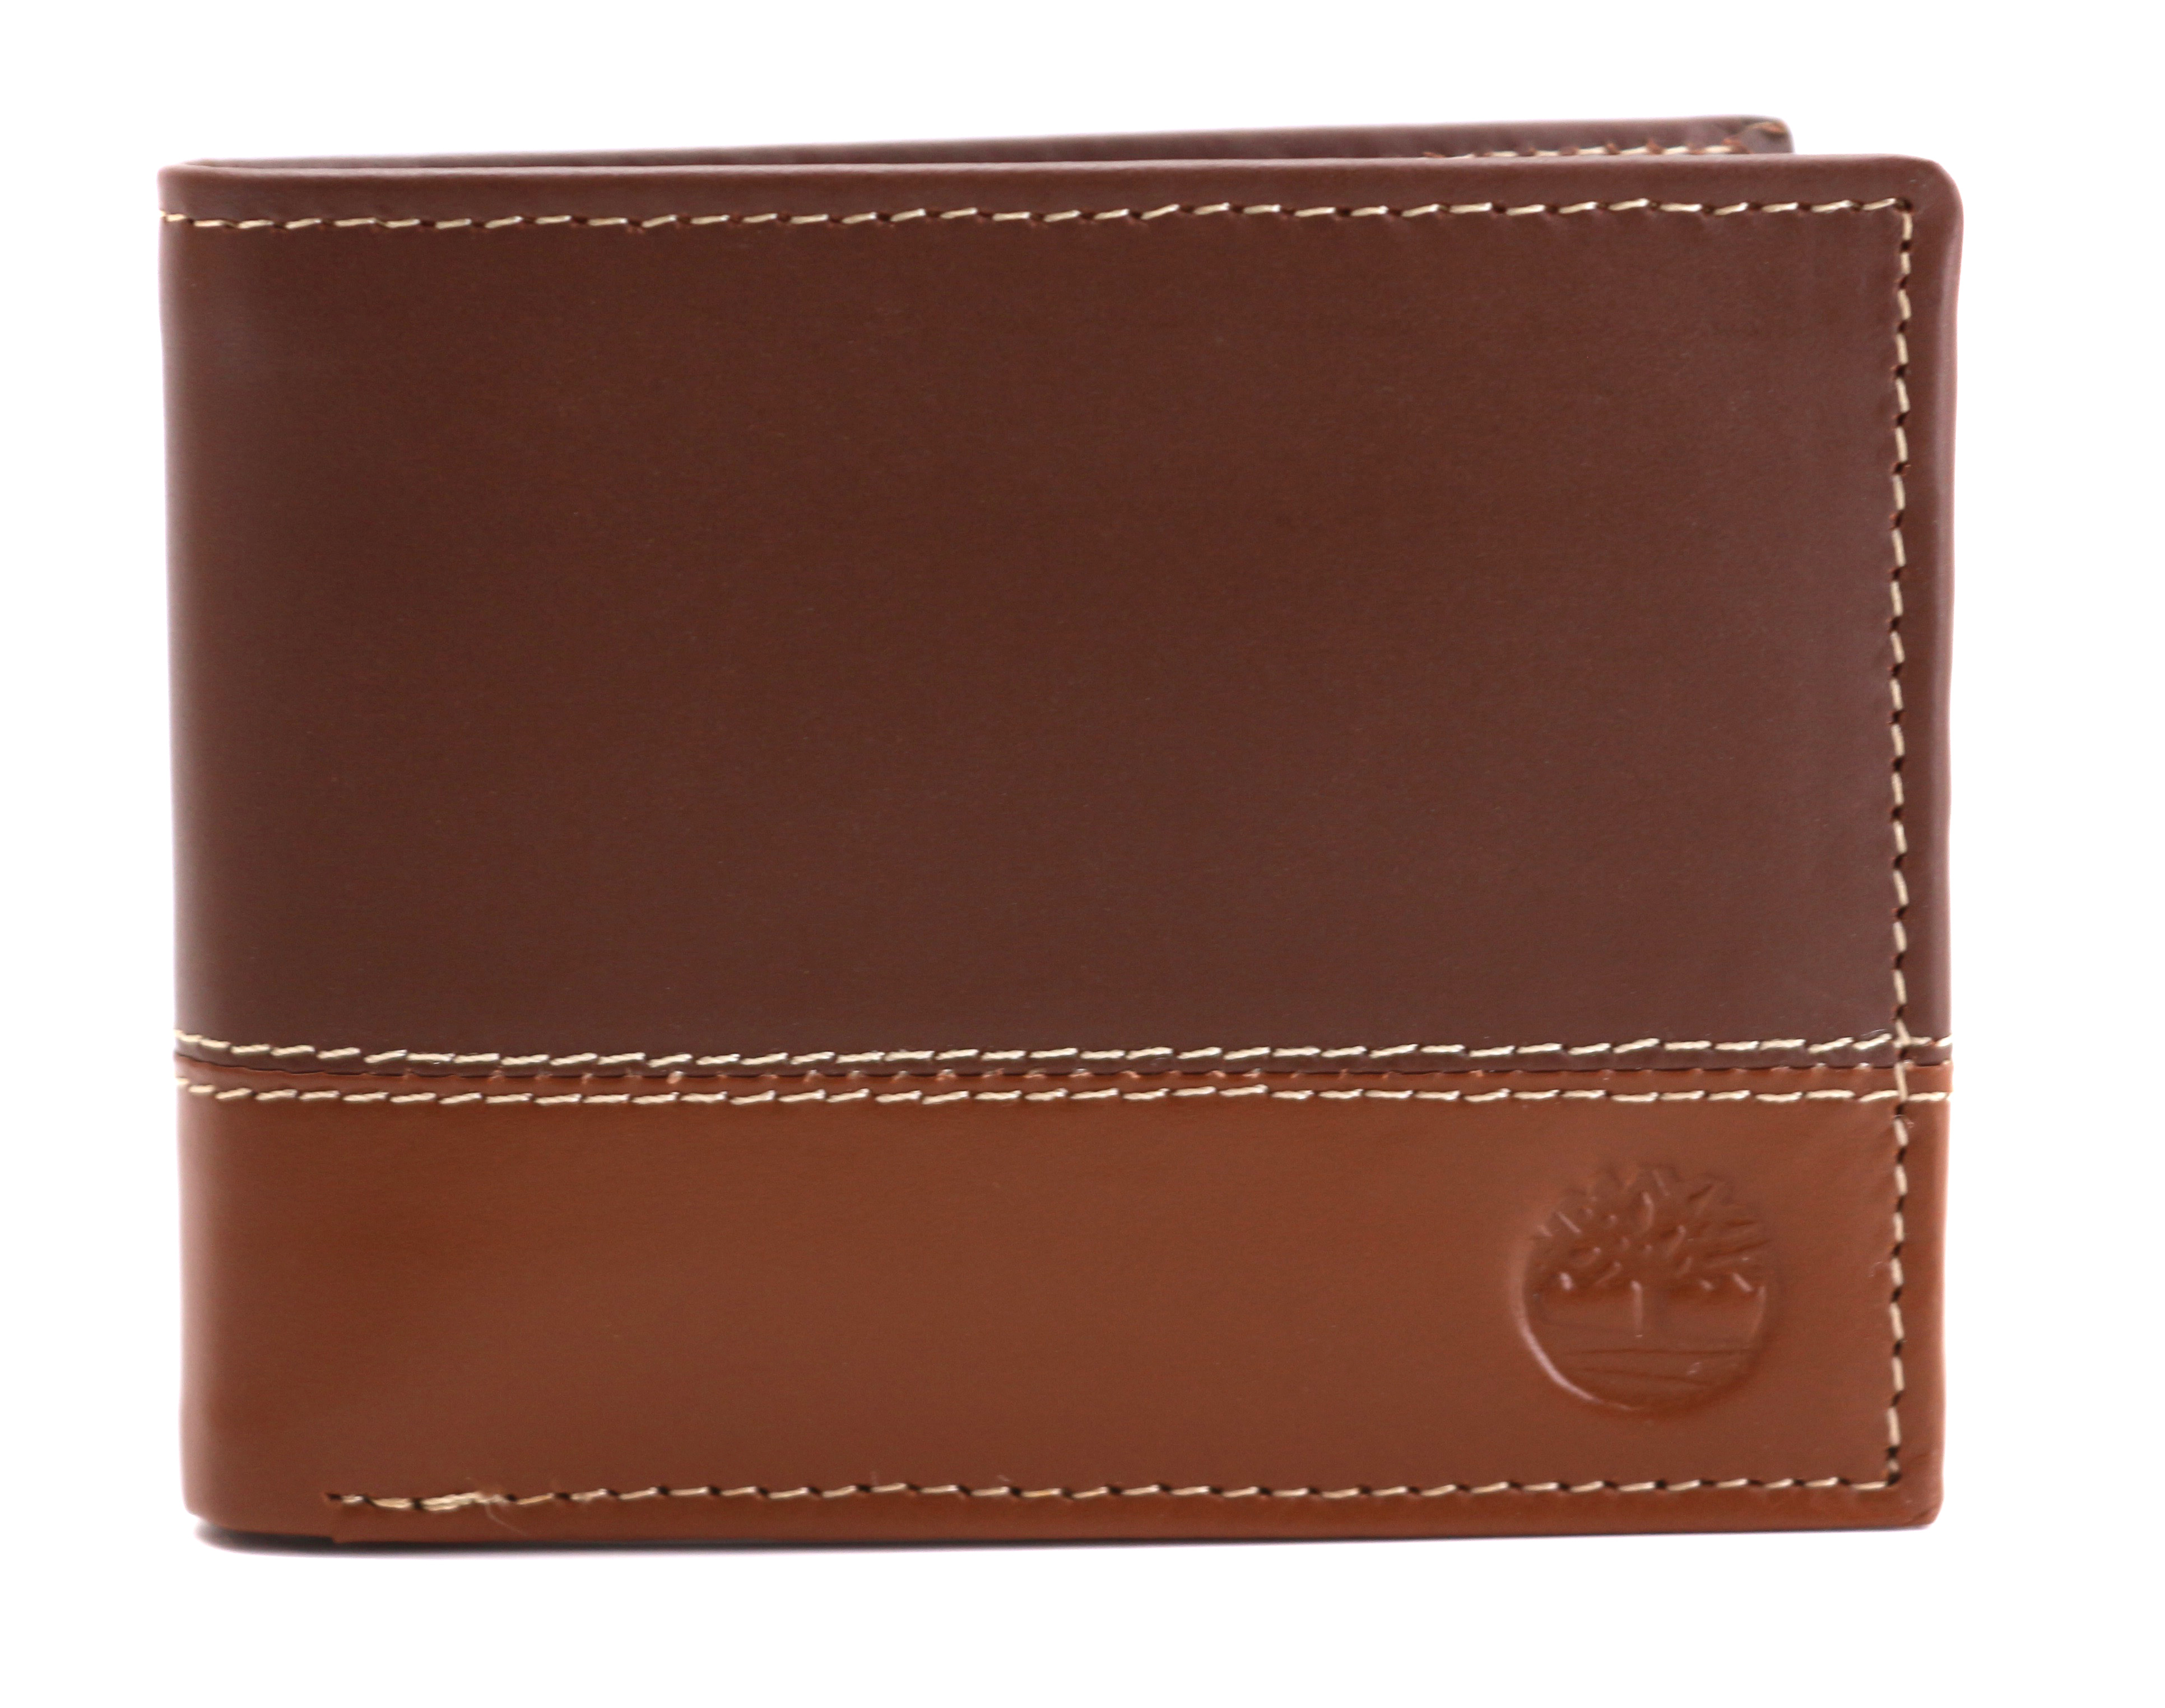 Timberland-Men-039-s-Genuine-Two-Tone-Leather-Credit-Card-Billfold-Commuter-Wallet thumbnail 38